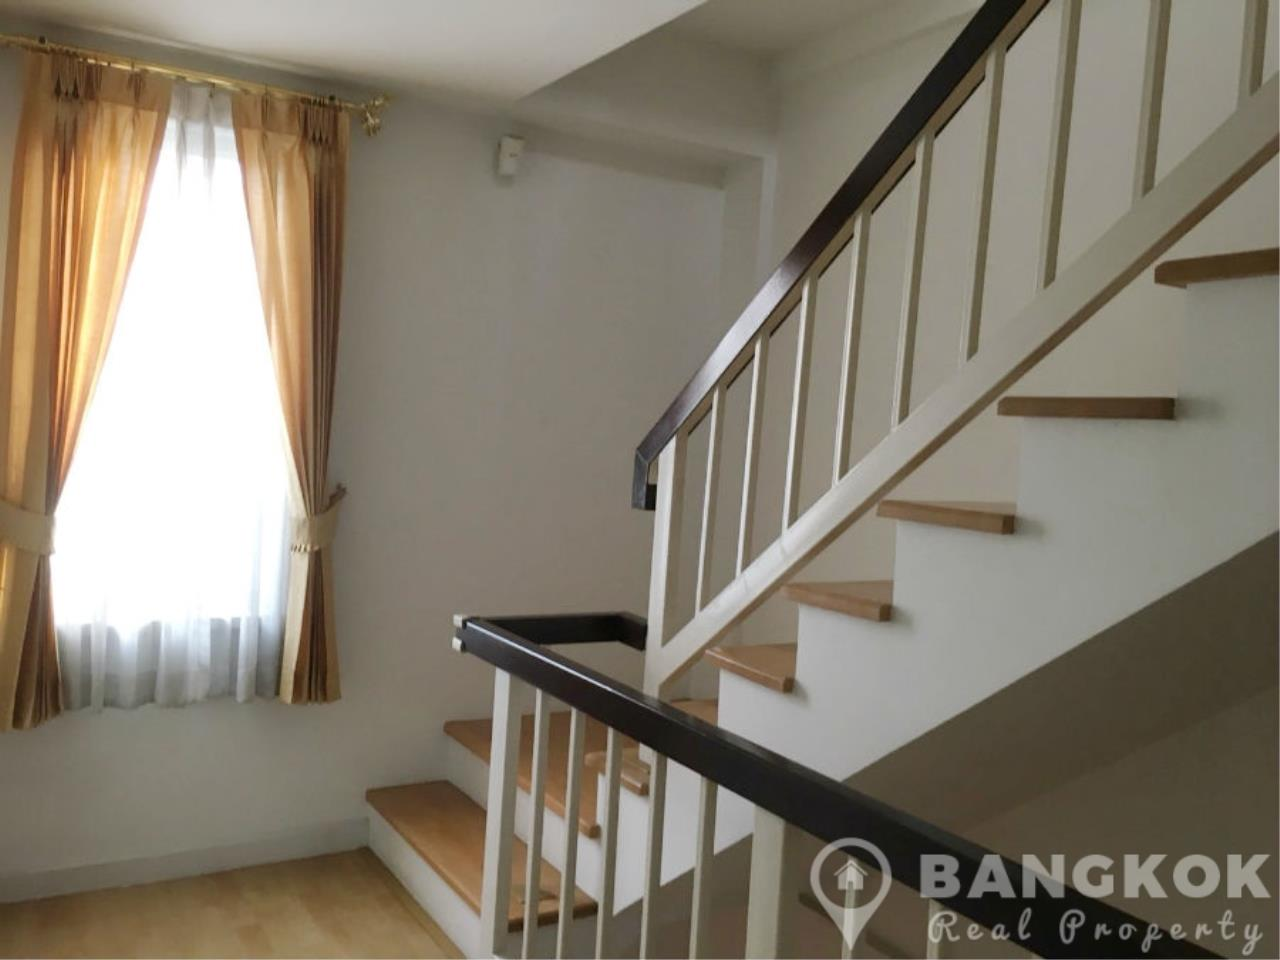 Bangkok Real Property Agency's Modern Udomsuk Townhouse with 3 Bed 3 Bath in Secure Compound 7